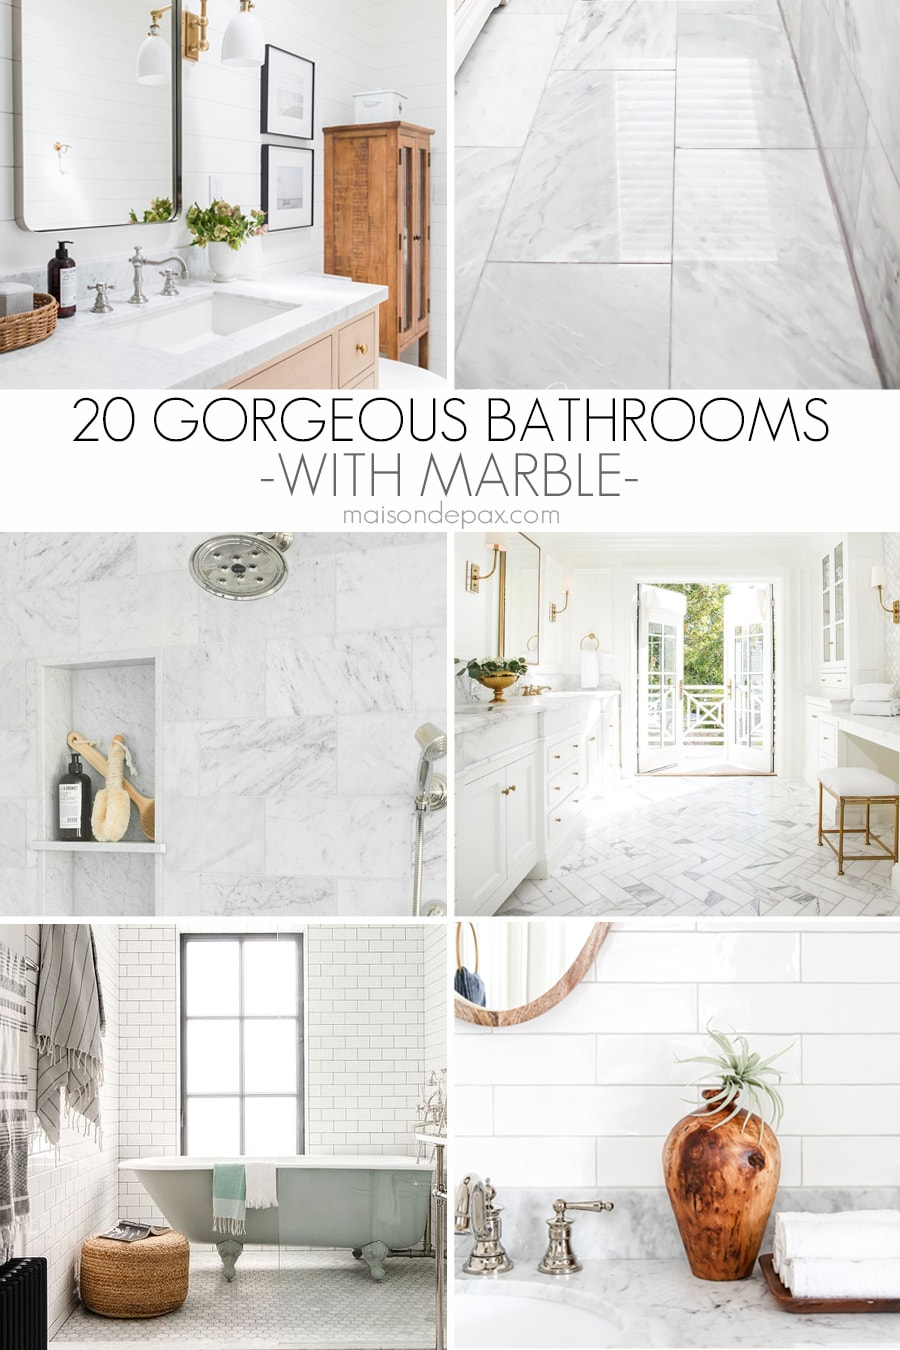 collage with 6 different images of bathrooms with marble